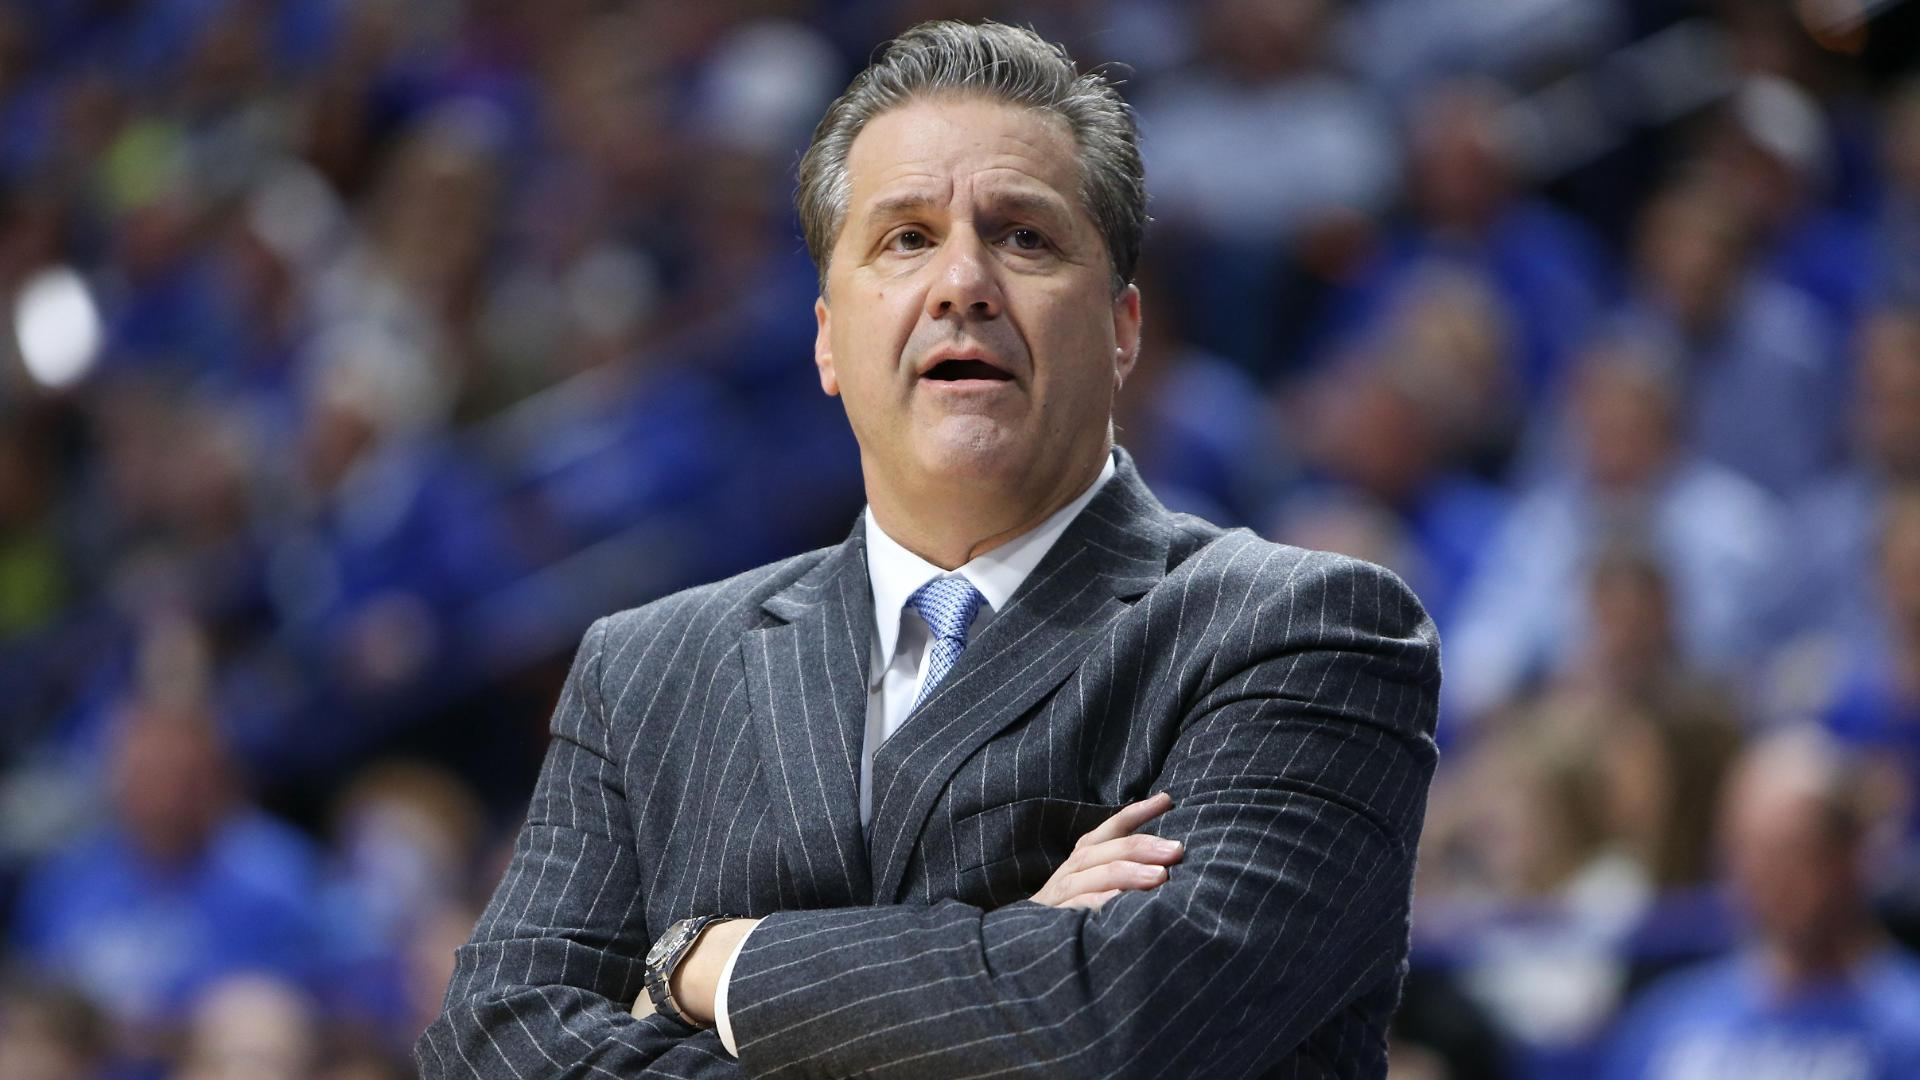 Calipari surprised to be named in Knicks GM hunt